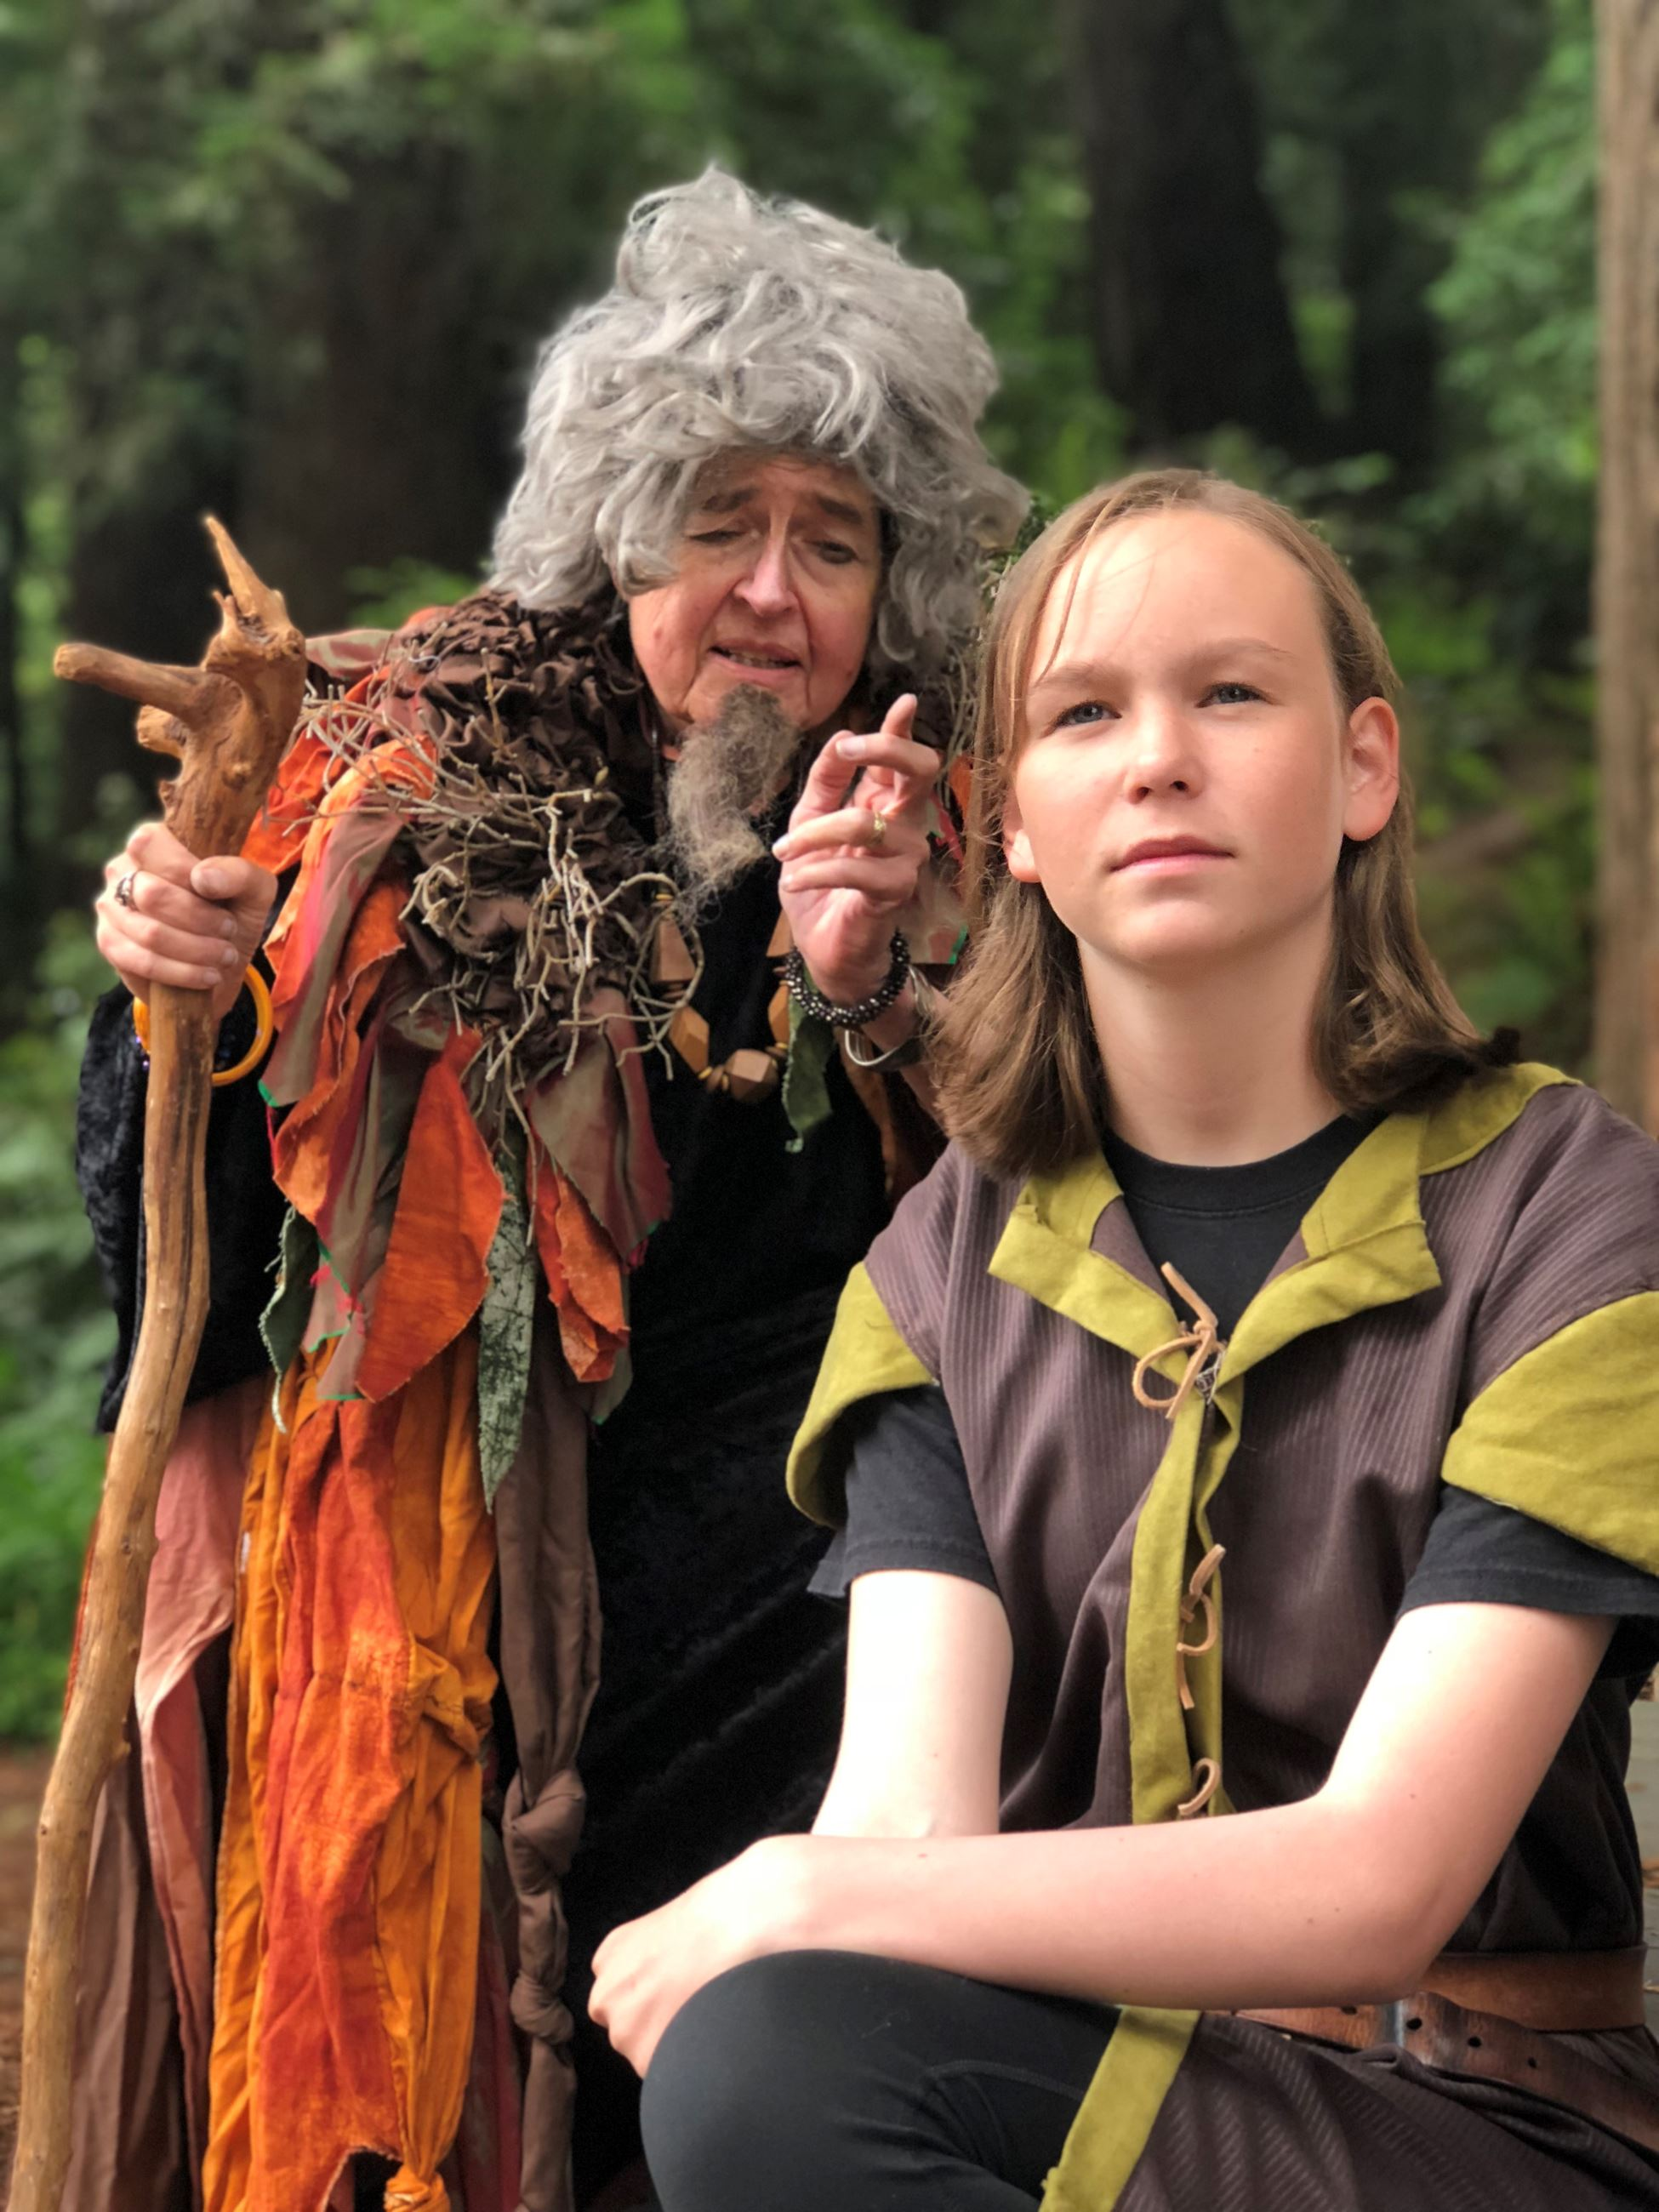 Nightshade and Young Merlin played by Pam F. Service and Zoe Osborn